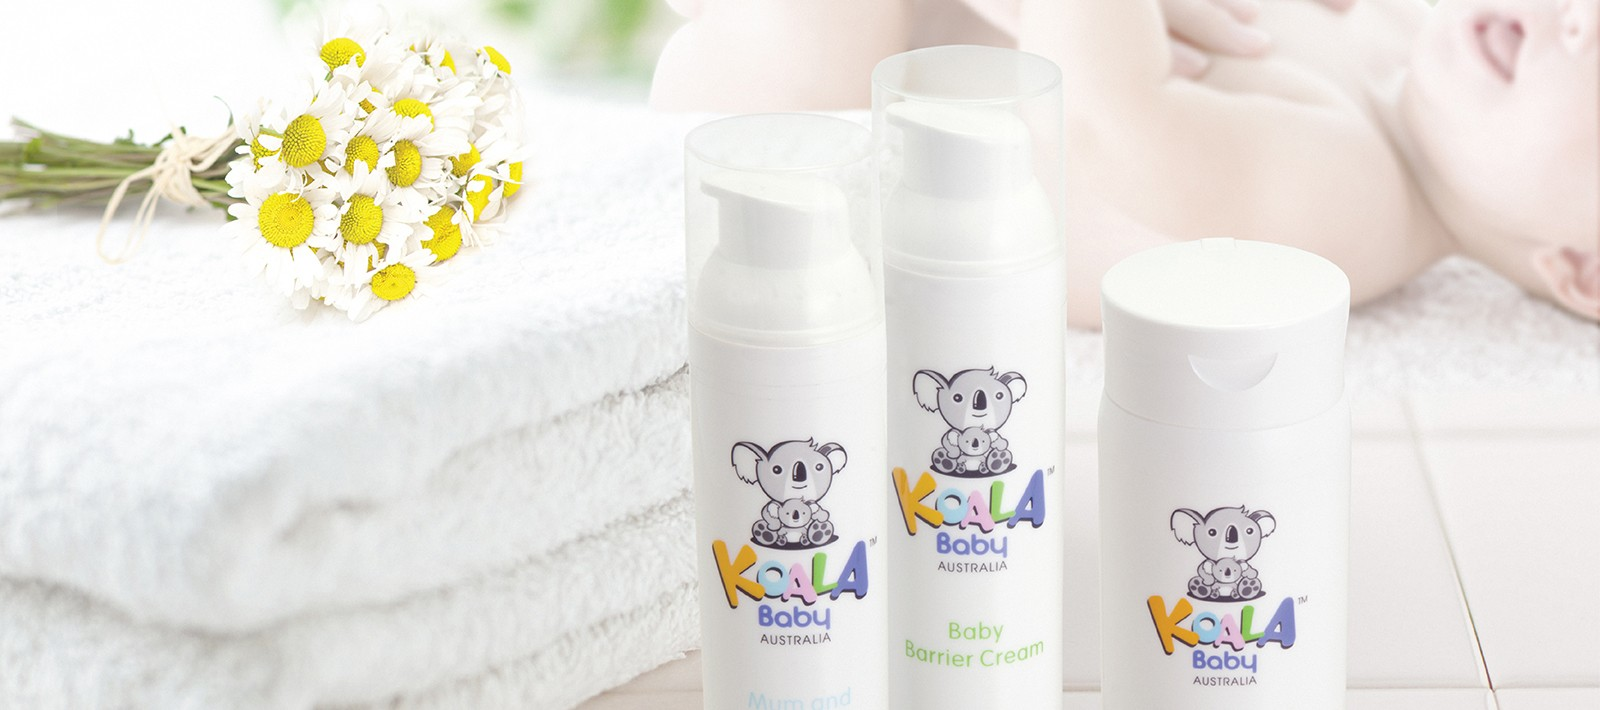 Skincare packaging design for Koala Baby